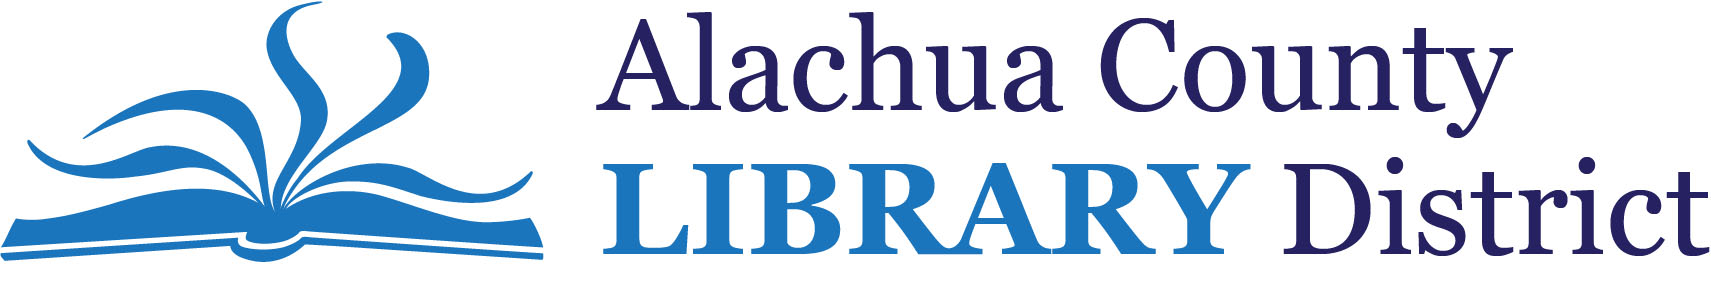 Find out more about Alachua County Library District: Library website, hours, locations, catalog, Inter-Library Loan, Genealogy Information, etc